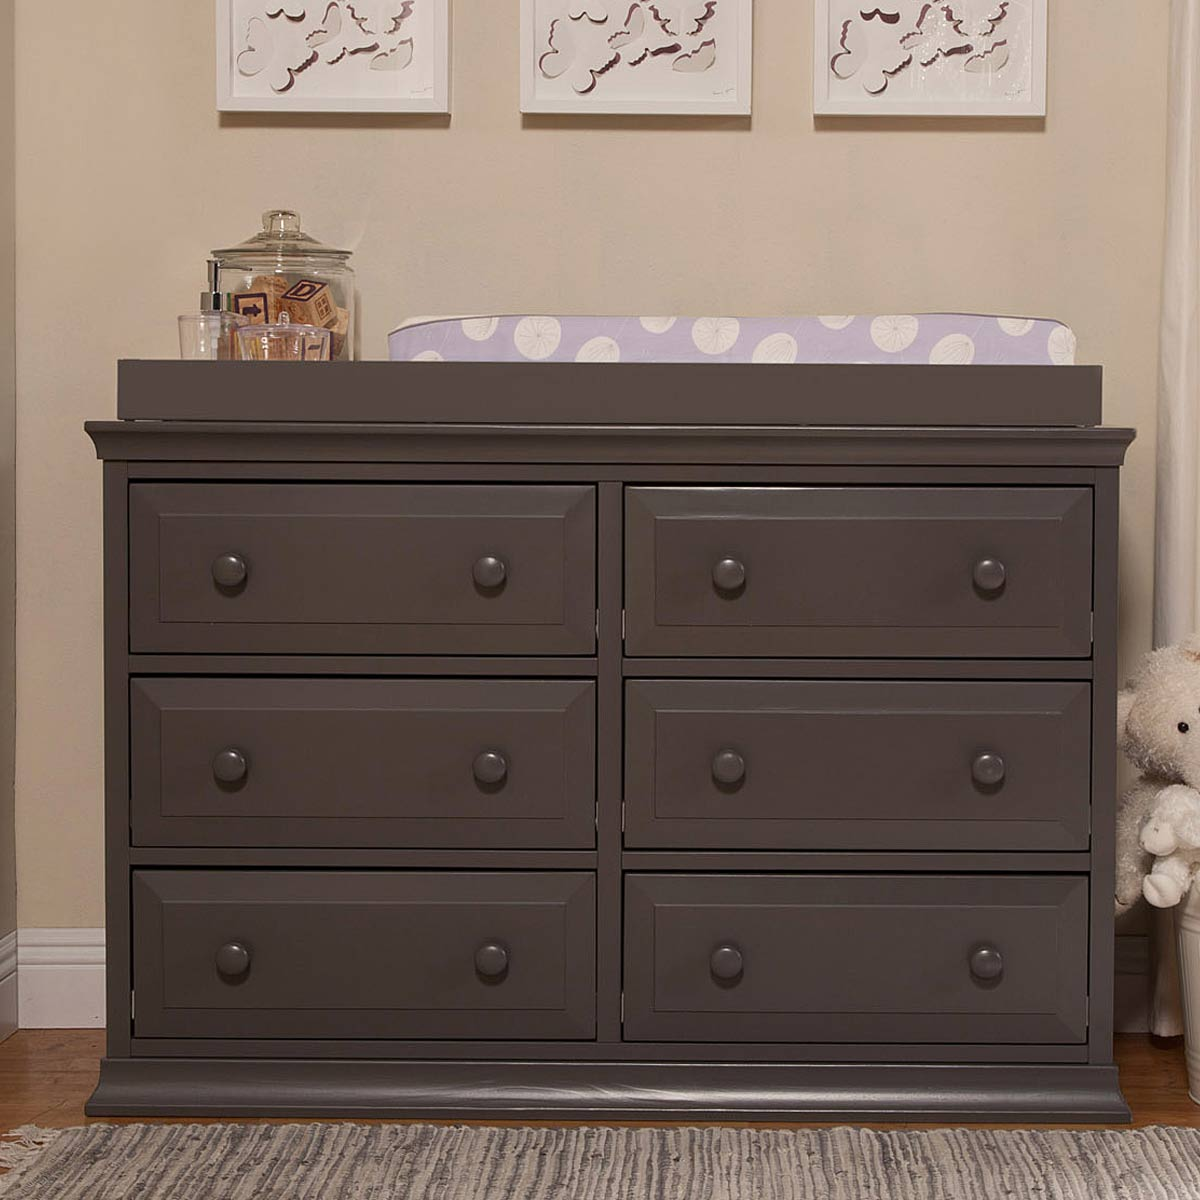 wondrous 6 drawers simplybabyfurniture